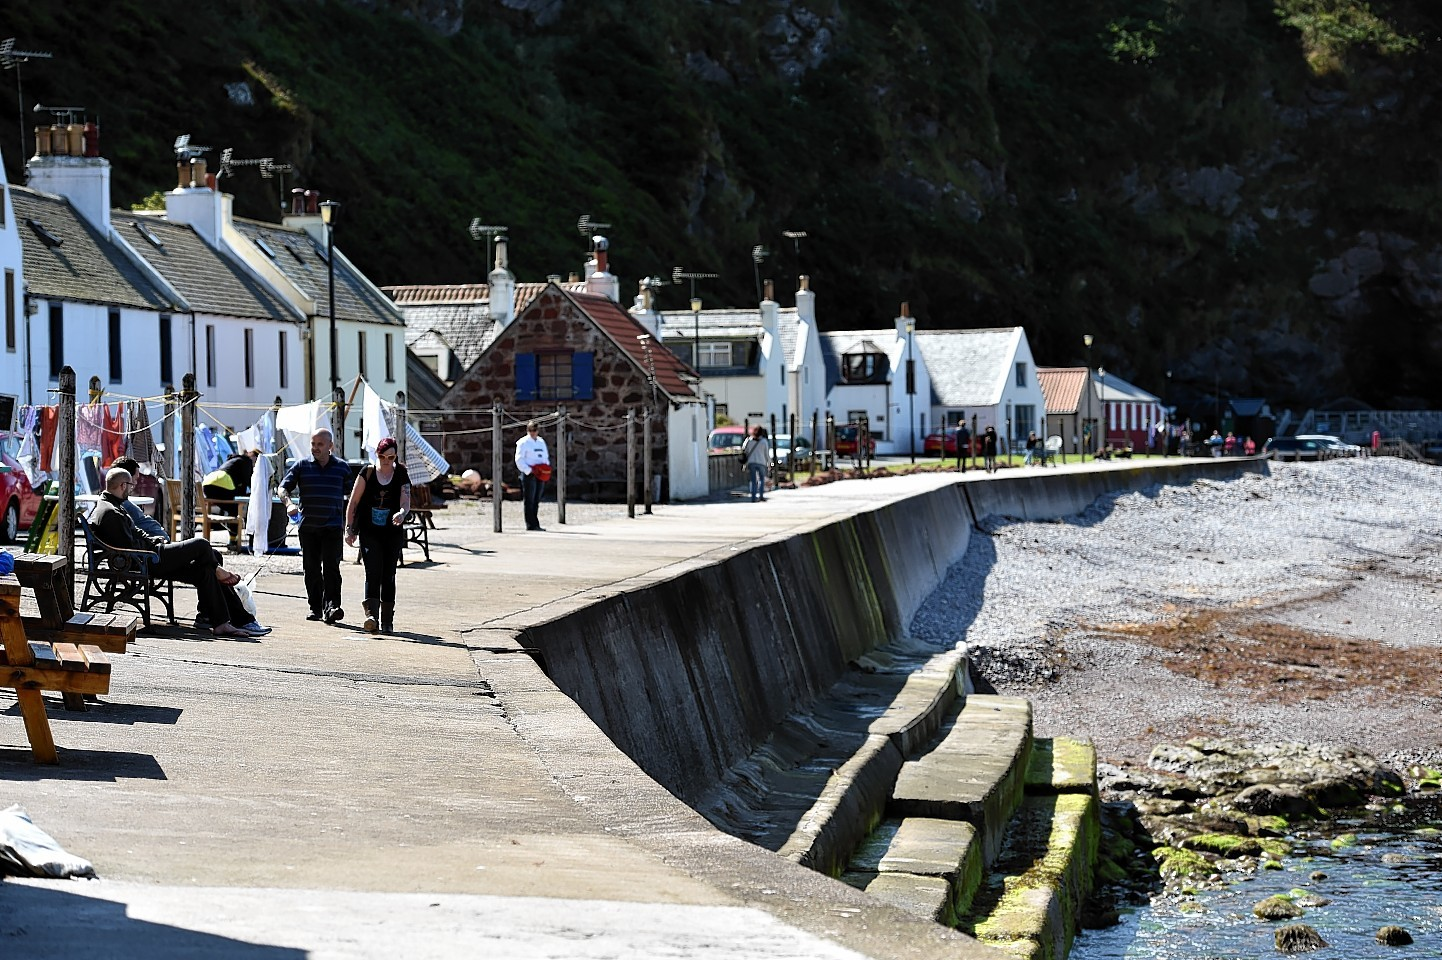 Pennan is one of the villages that could benefit from more tourism